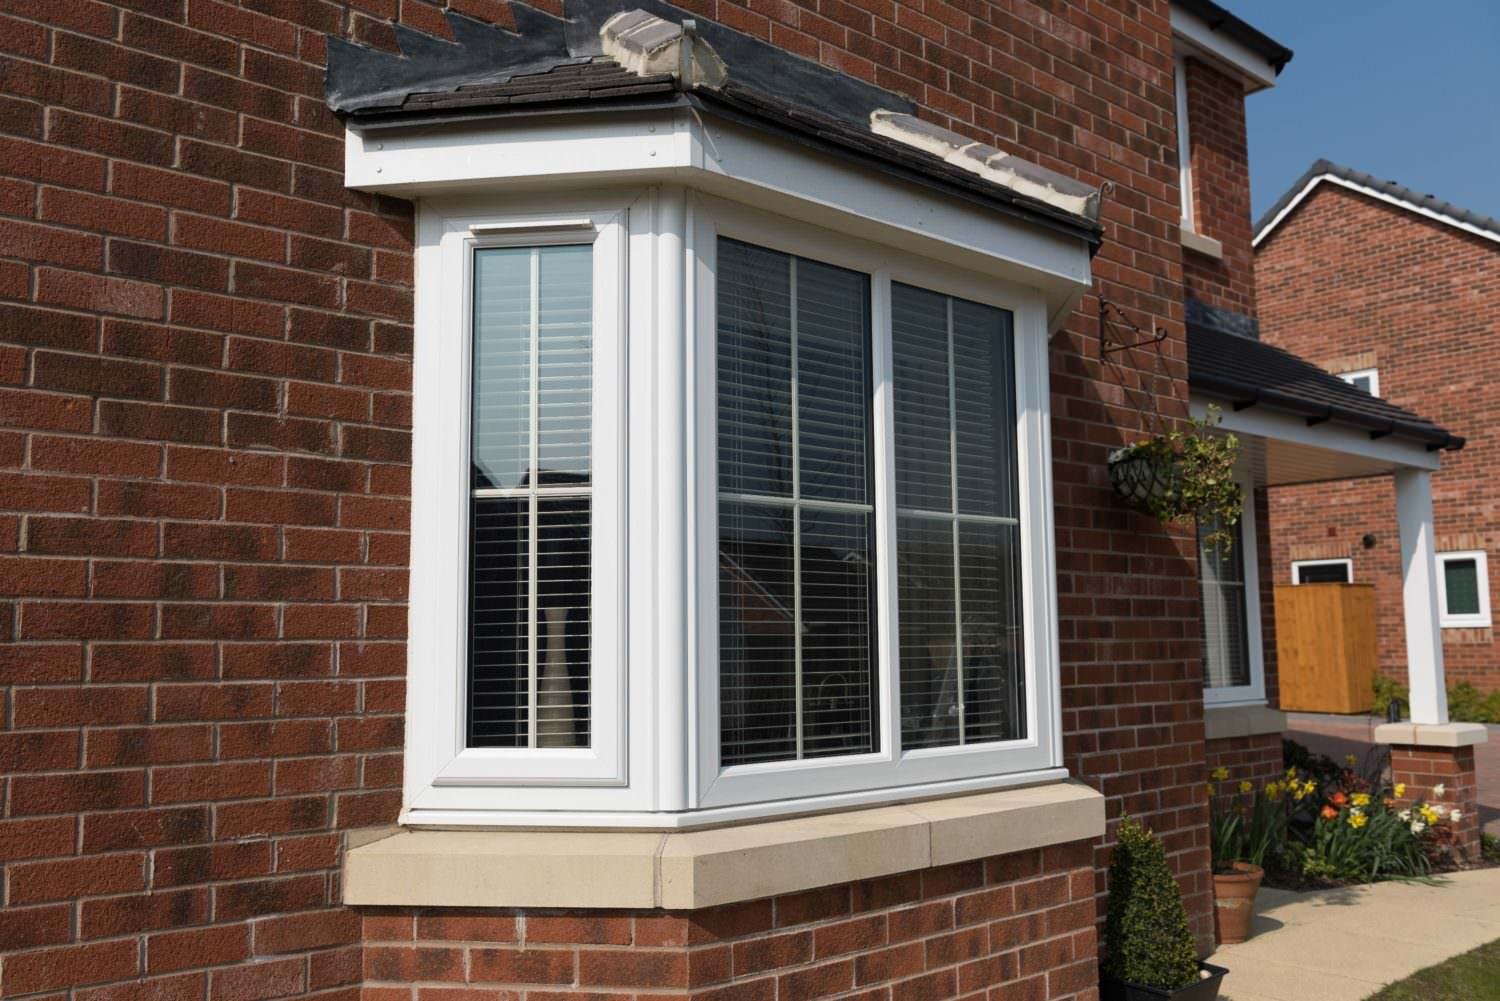 uPVC Bay Windows cost